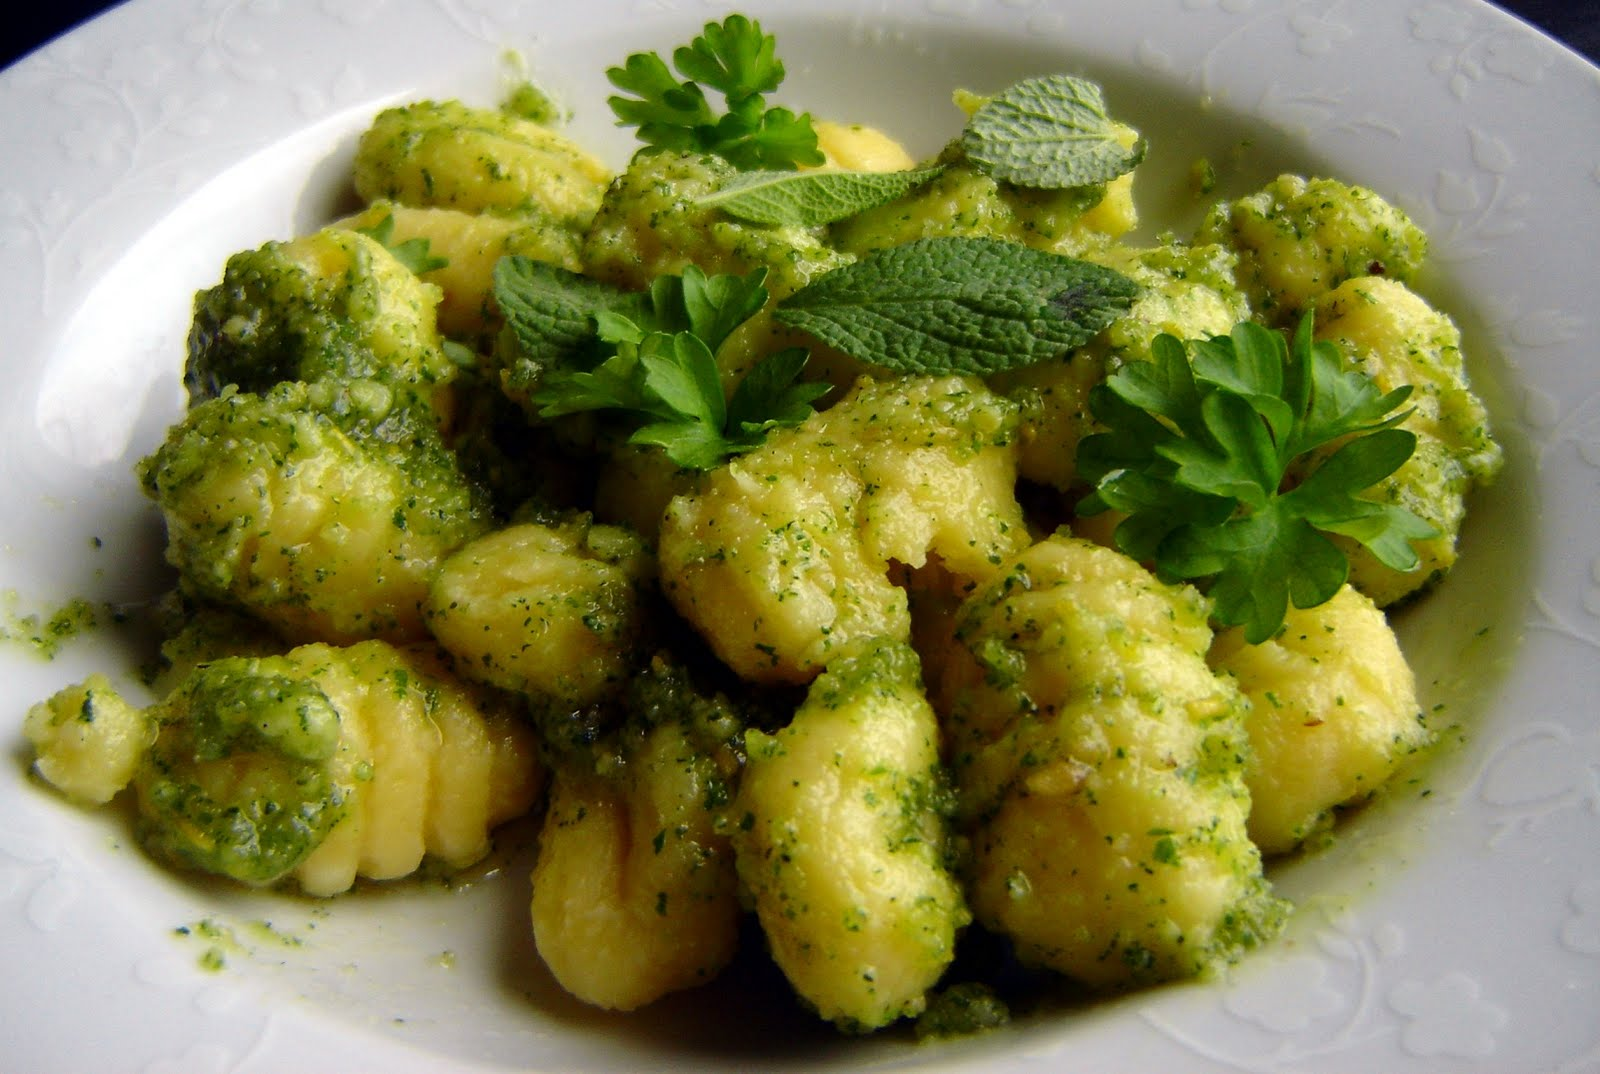 gnocchi mit salbei petersilien pesto the vegetarian diaries. Black Bedroom Furniture Sets. Home Design Ideas